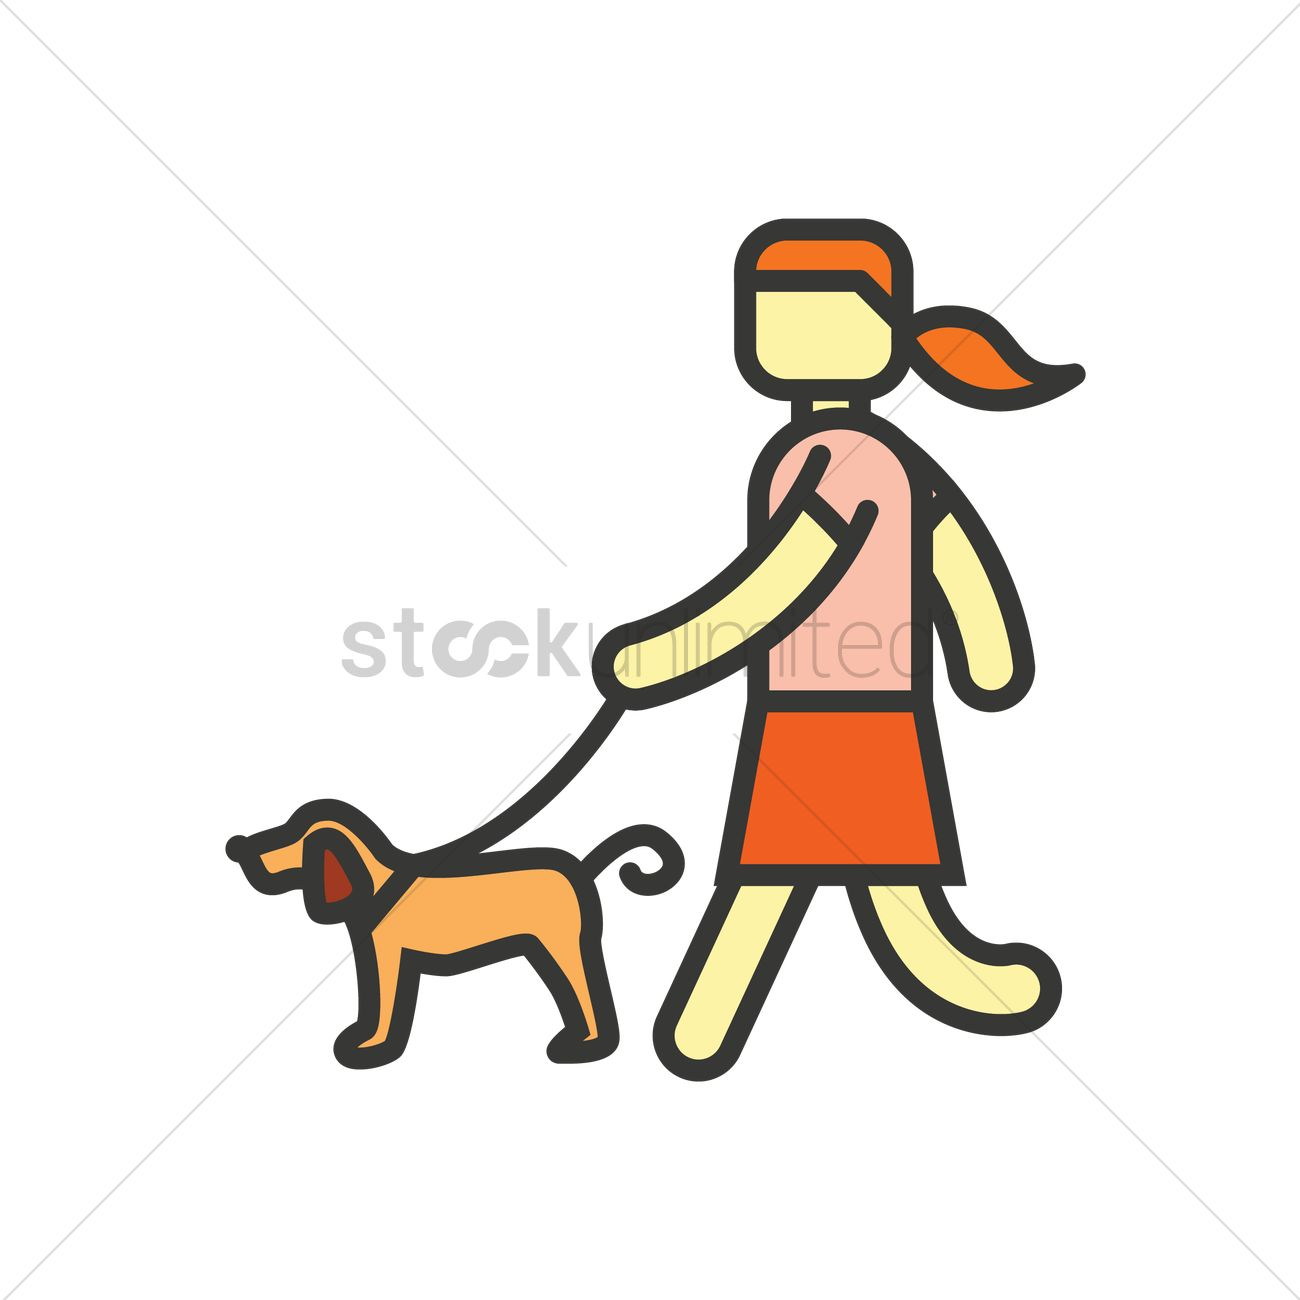 girl taking dog for walk vector image 1543267 stockunlimited stockunlimited